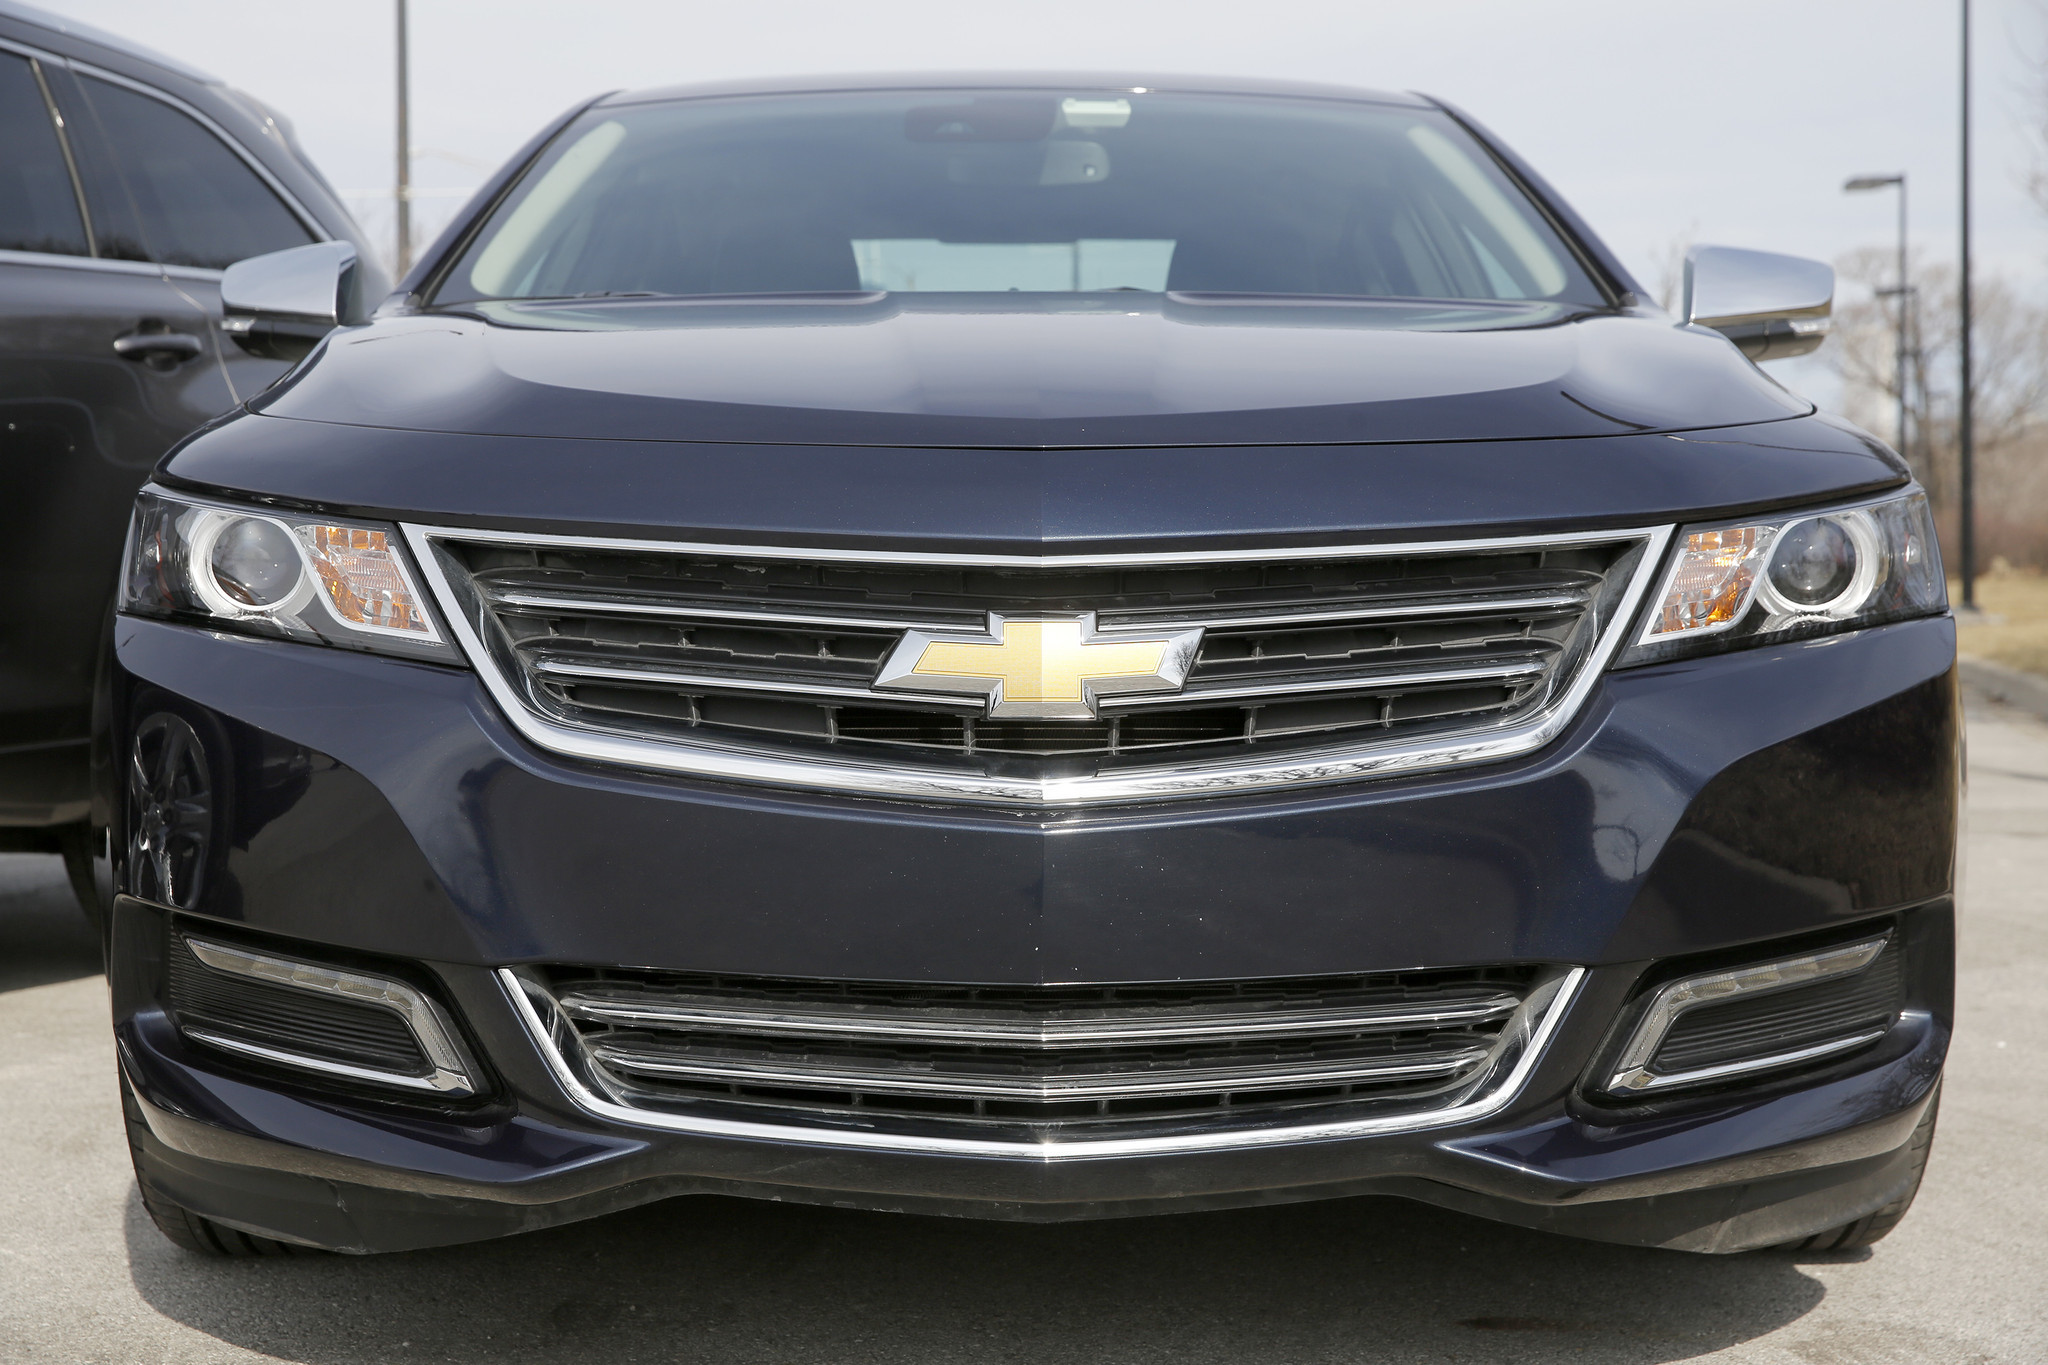 gm recalls about 308k cars air bags may not work in crash daily press. Black Bedroom Furniture Sets. Home Design Ideas